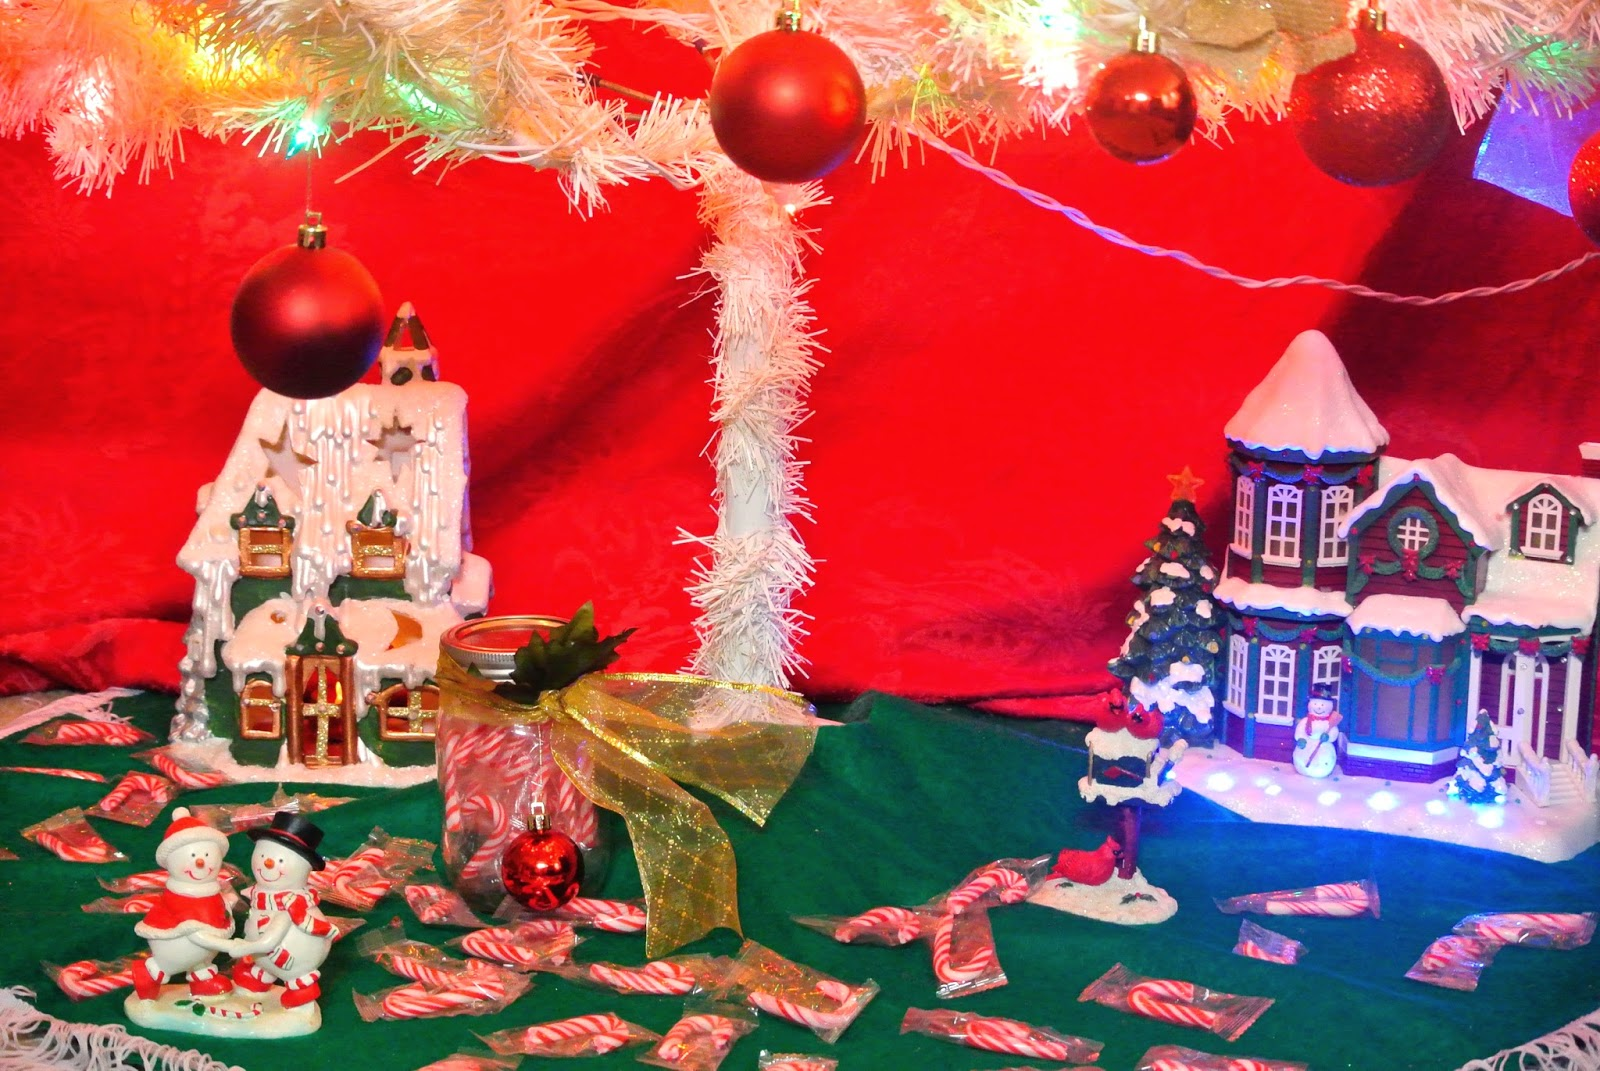 Christmas house, snowman, tree skirt